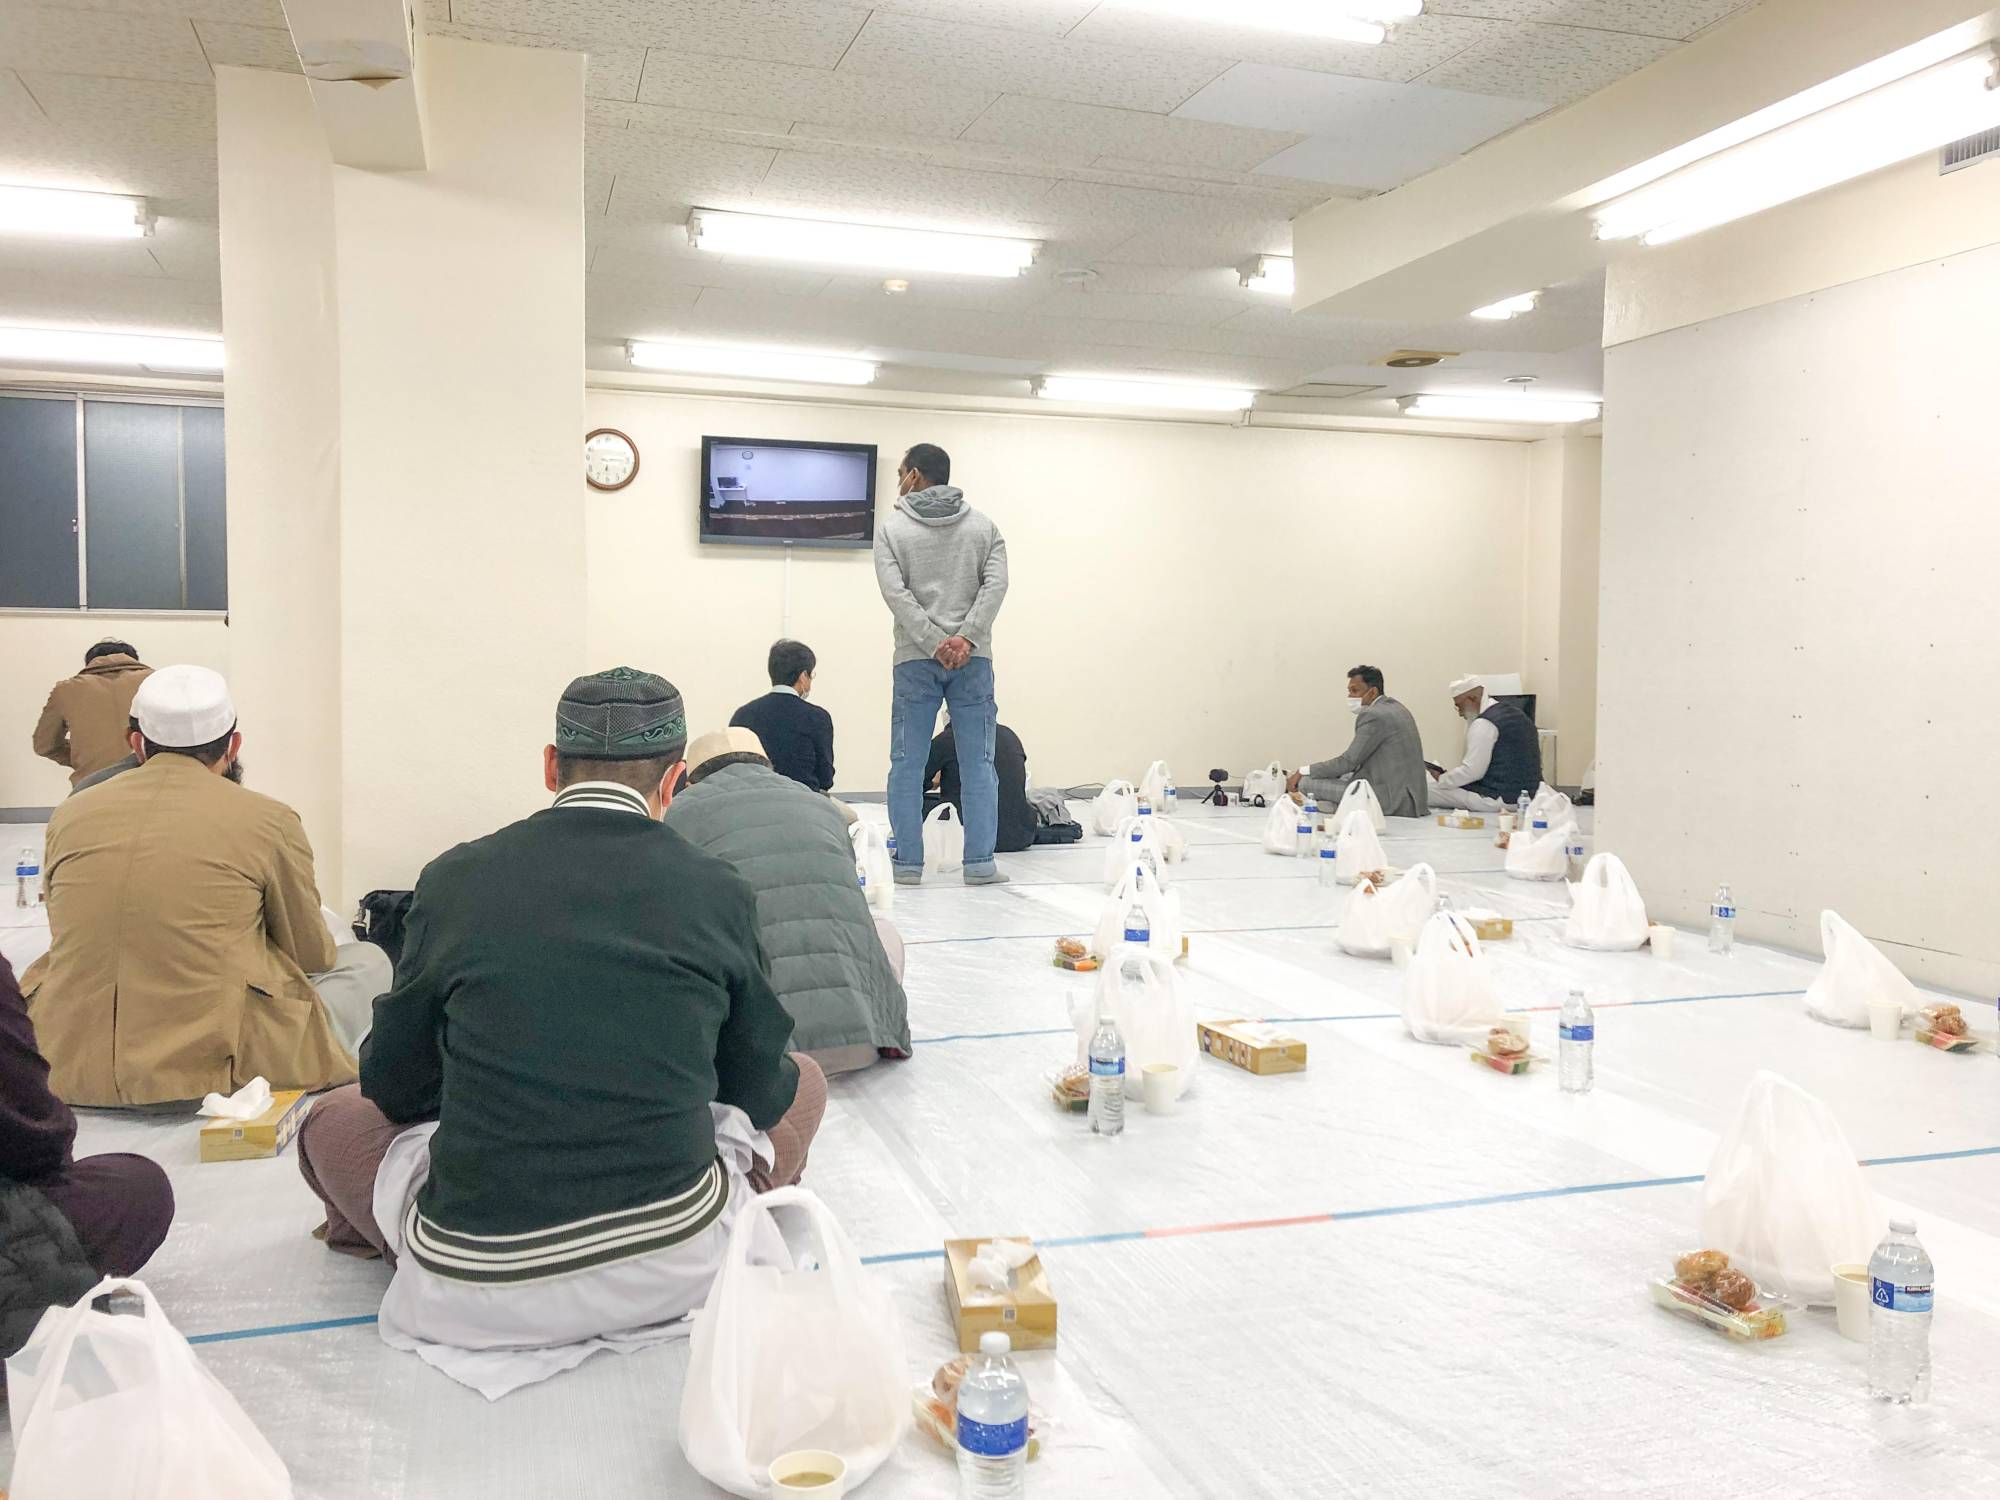 This iftar (fast-breaking meal) at a mosque in Tokyo's Okachimachi neighborhood enforces social distancing, sanitation and individually served meals | COURTESY OF KAIJI WADA